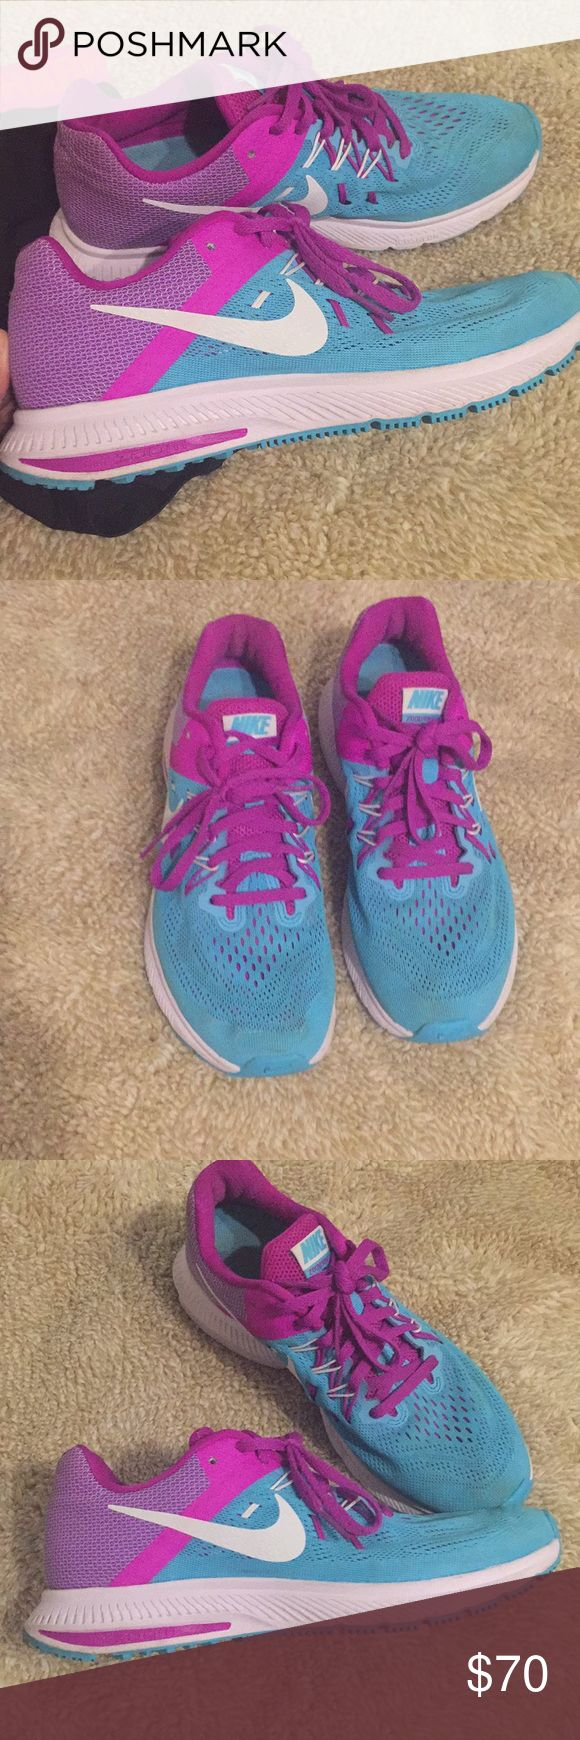 Super cute Nike Zoom Shoes🏋 Size 8 sky blue Nike Zoom Shoes, normal wear and tear but great used condition :) Nike Shoes Sneakers